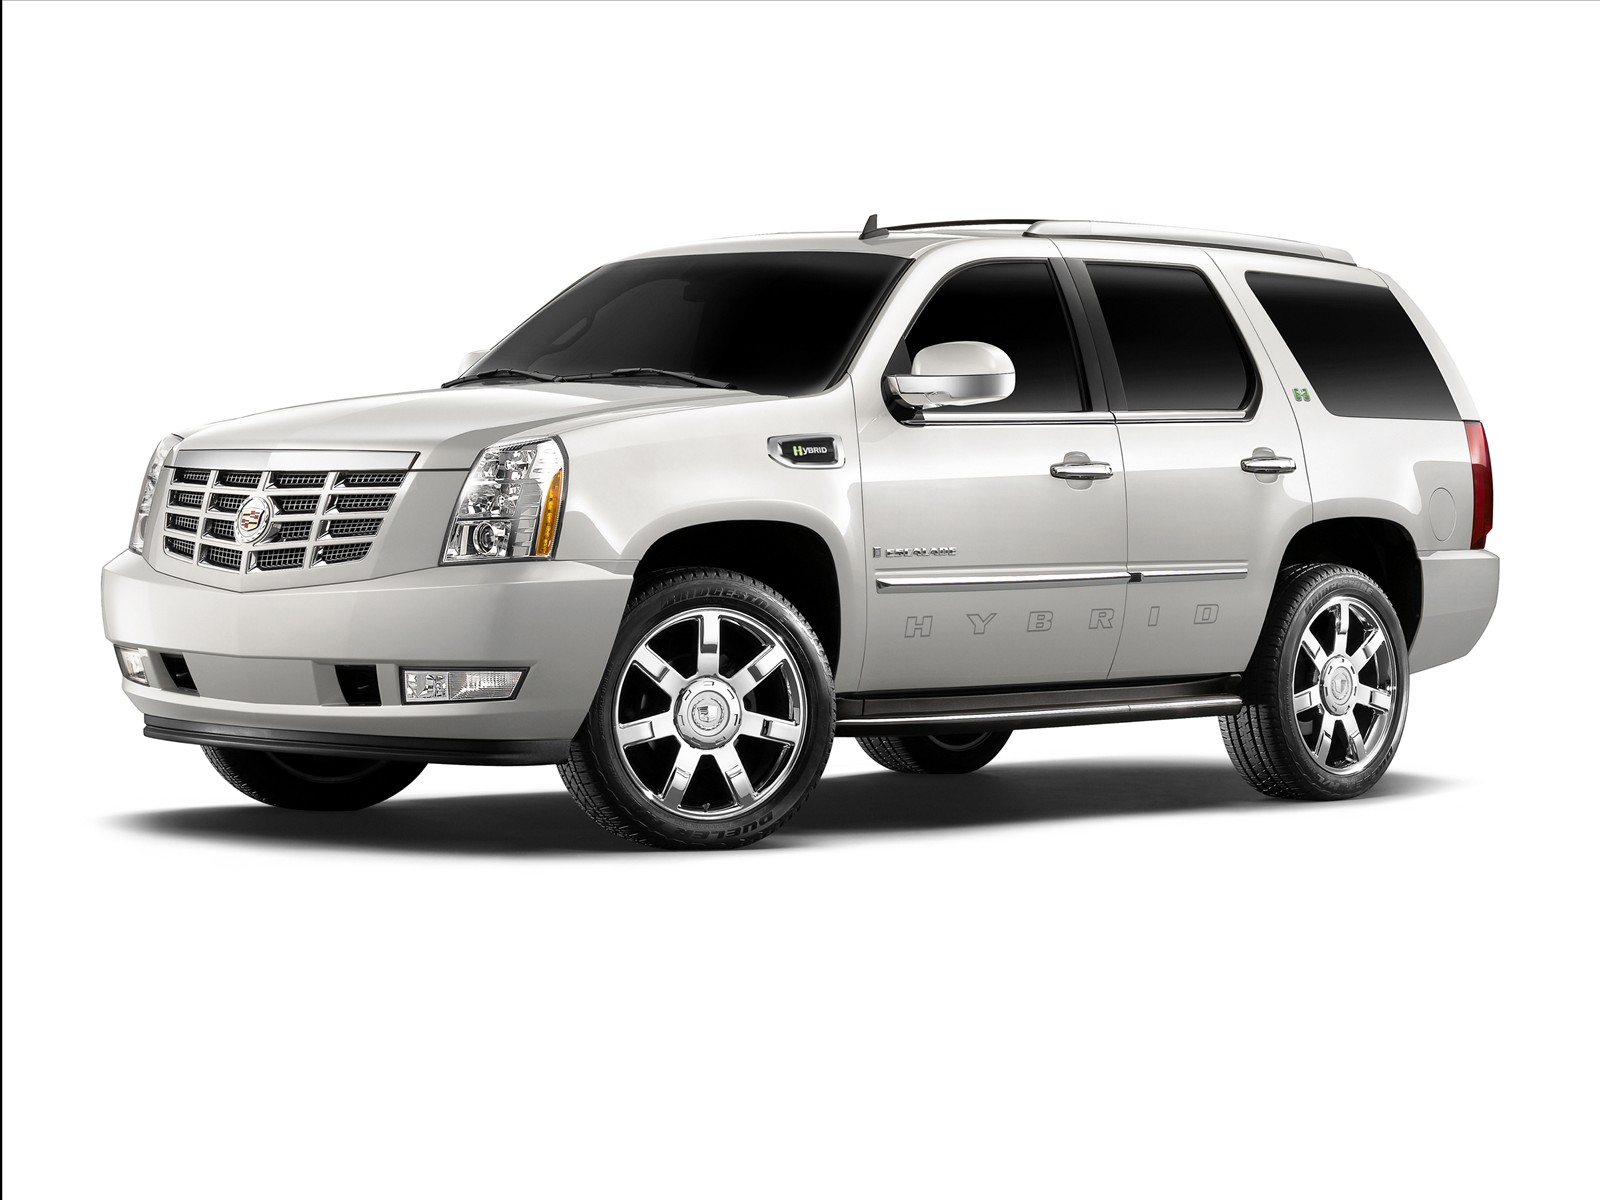 Cadillac Escalade 2009 Fuse Box Books Of Wiring Diagram Hybrid Wallpapers Rh Thewallpapers Org